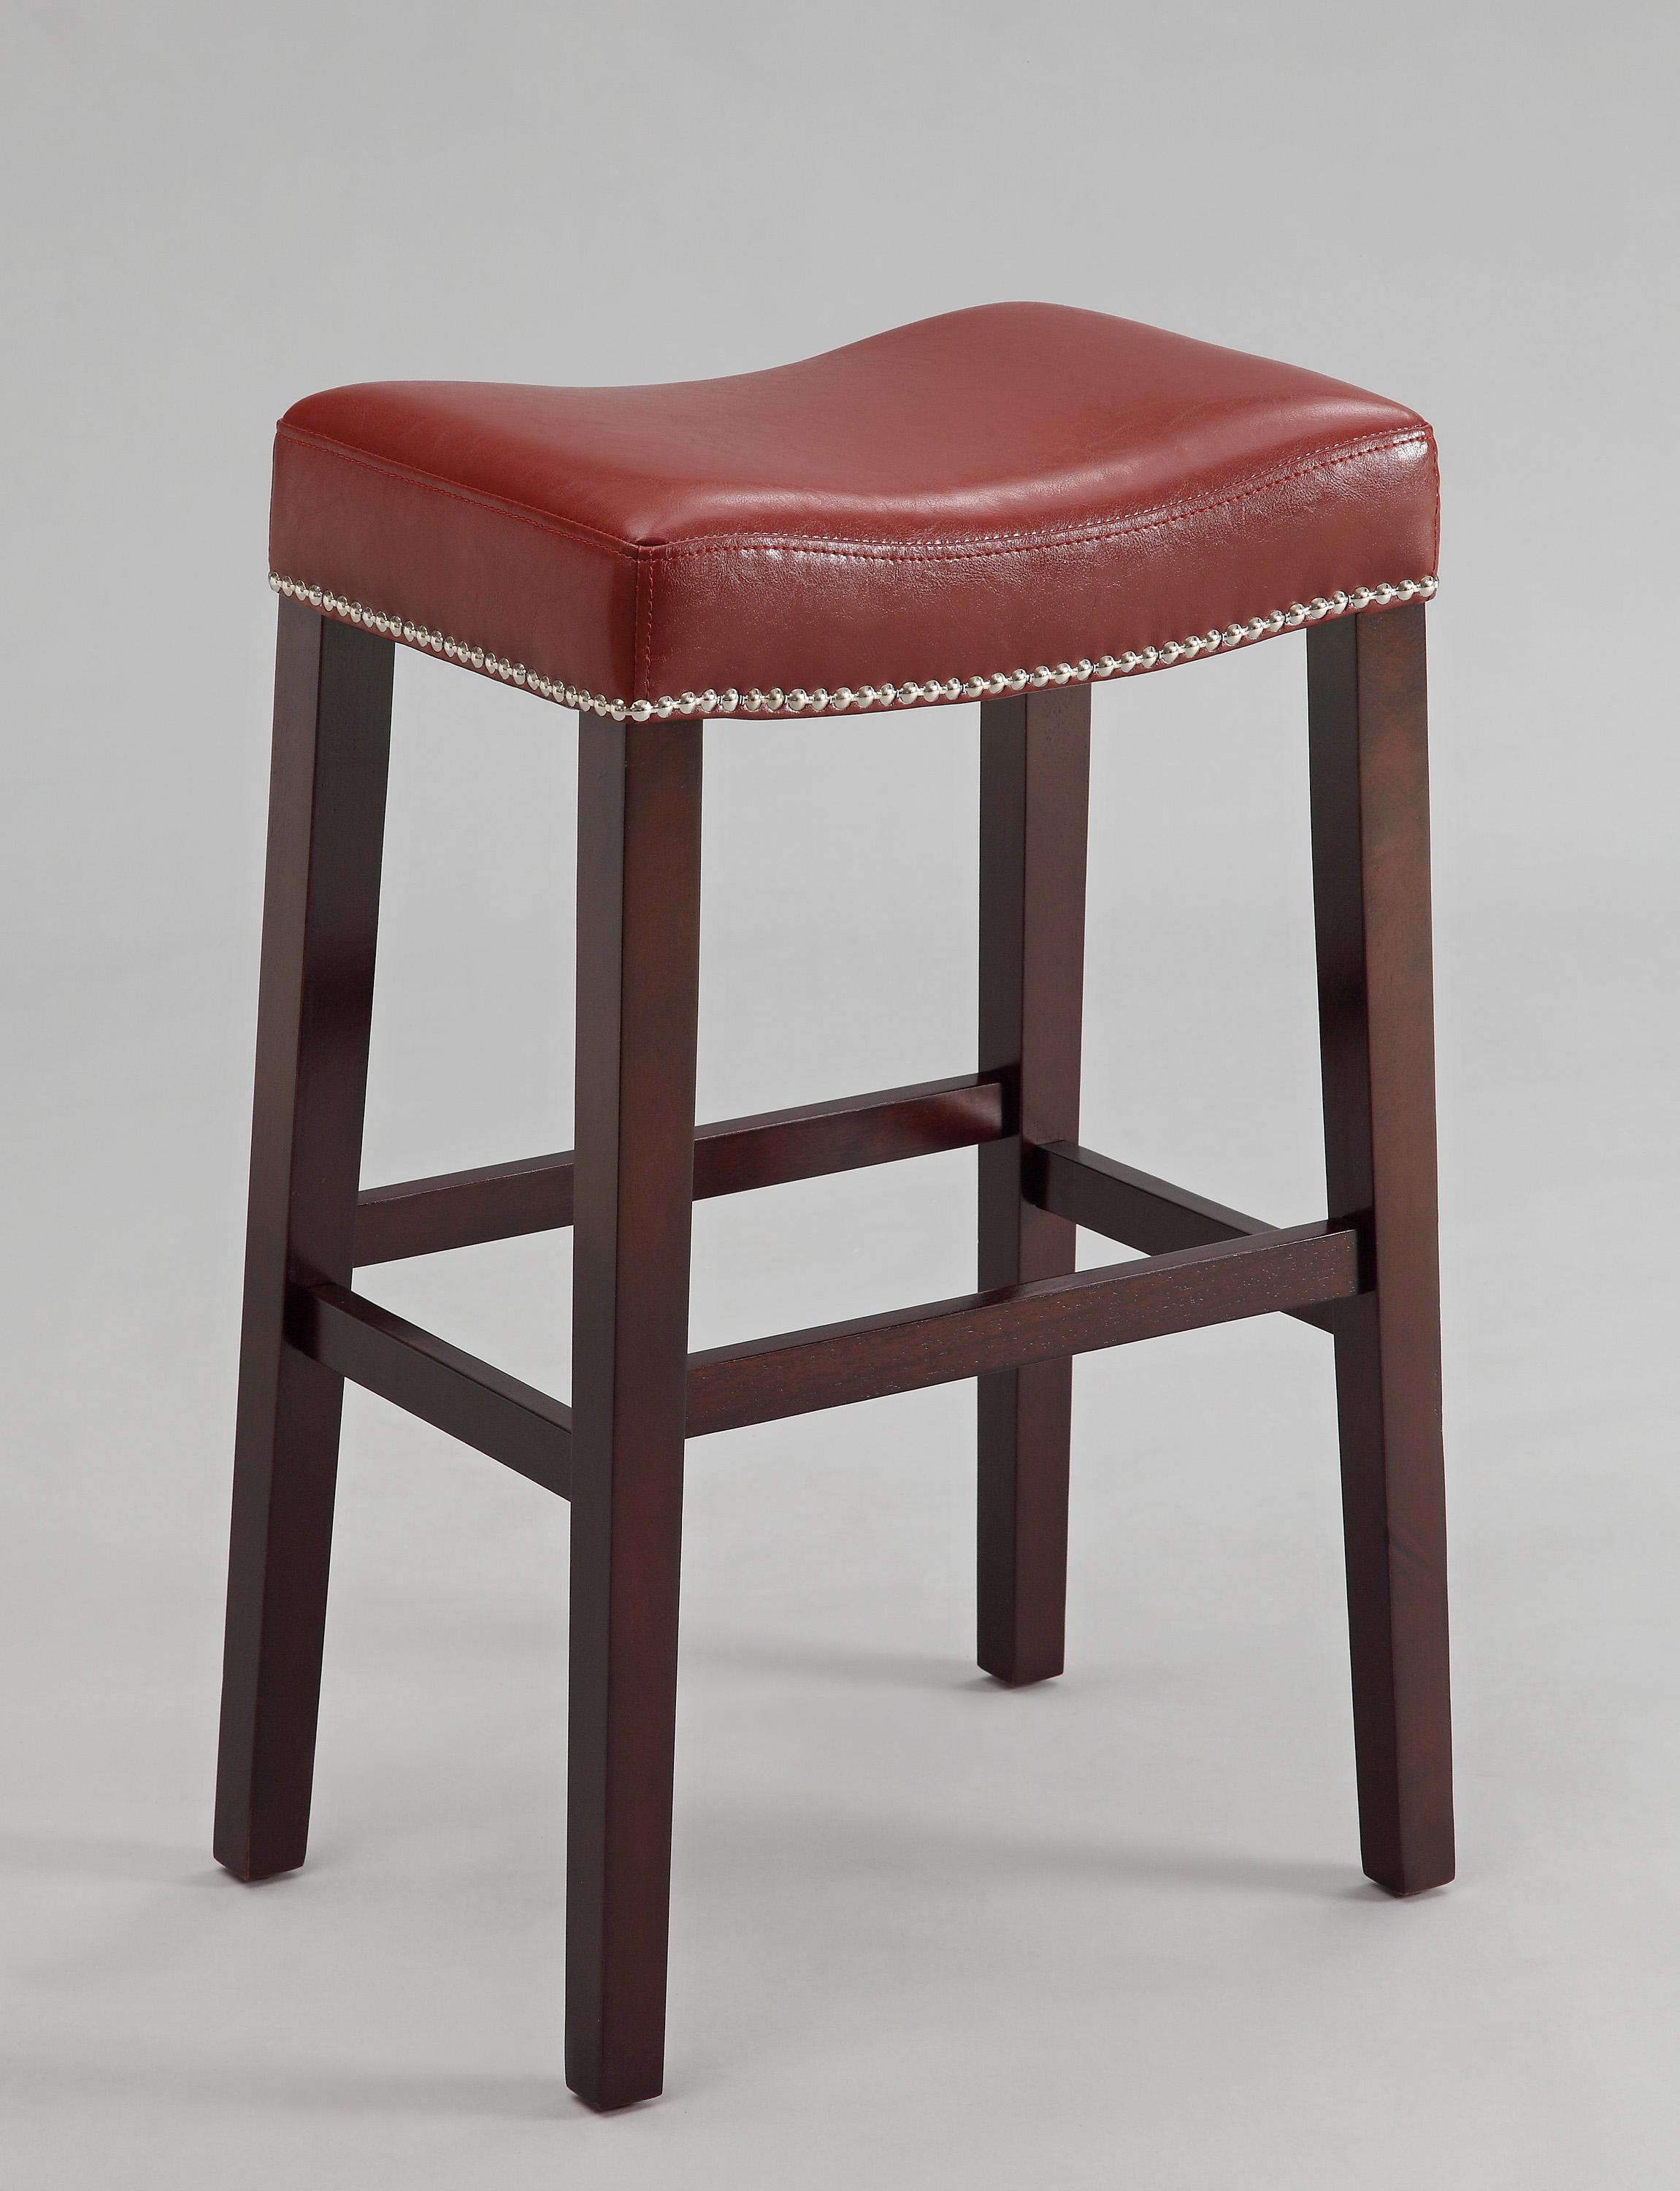 Crown Mark Nadia Saddle Stool - Item Number: 2991C-29-RD